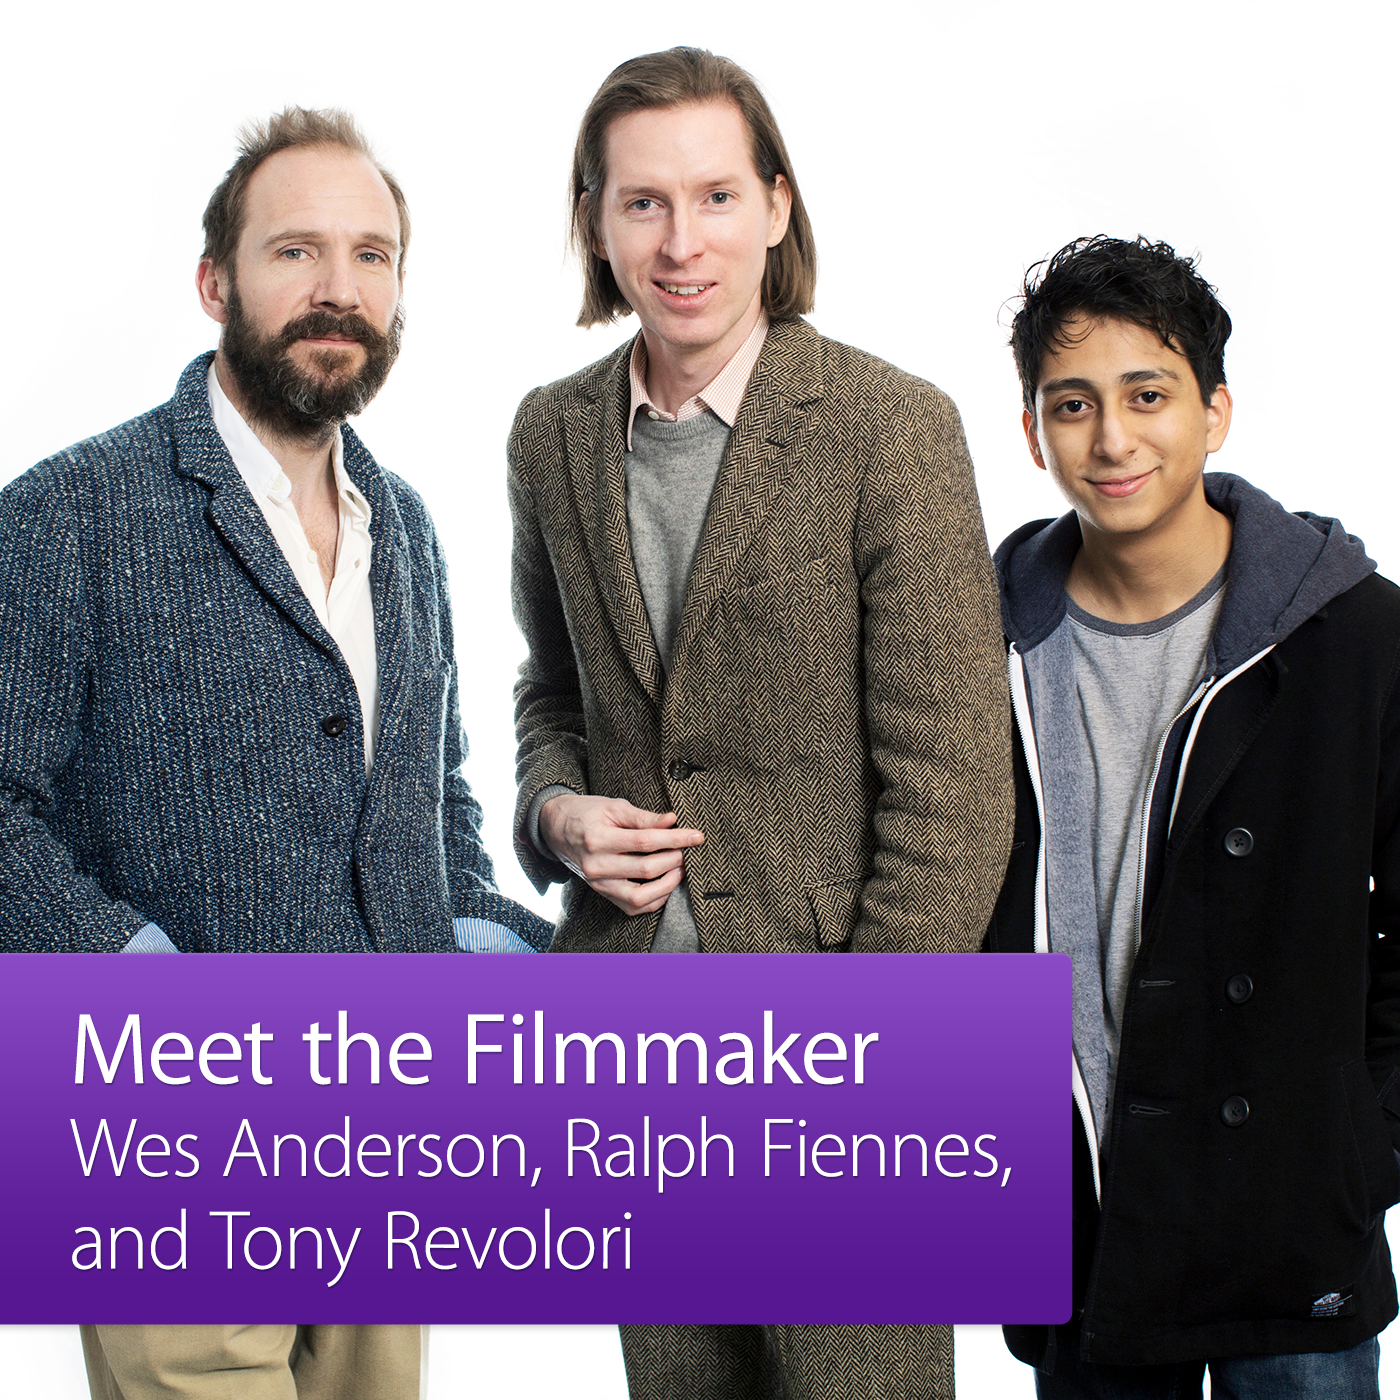 Wes Anderson, Ralph Fiennes, and Tony Revolori: Meet the Filmmaker